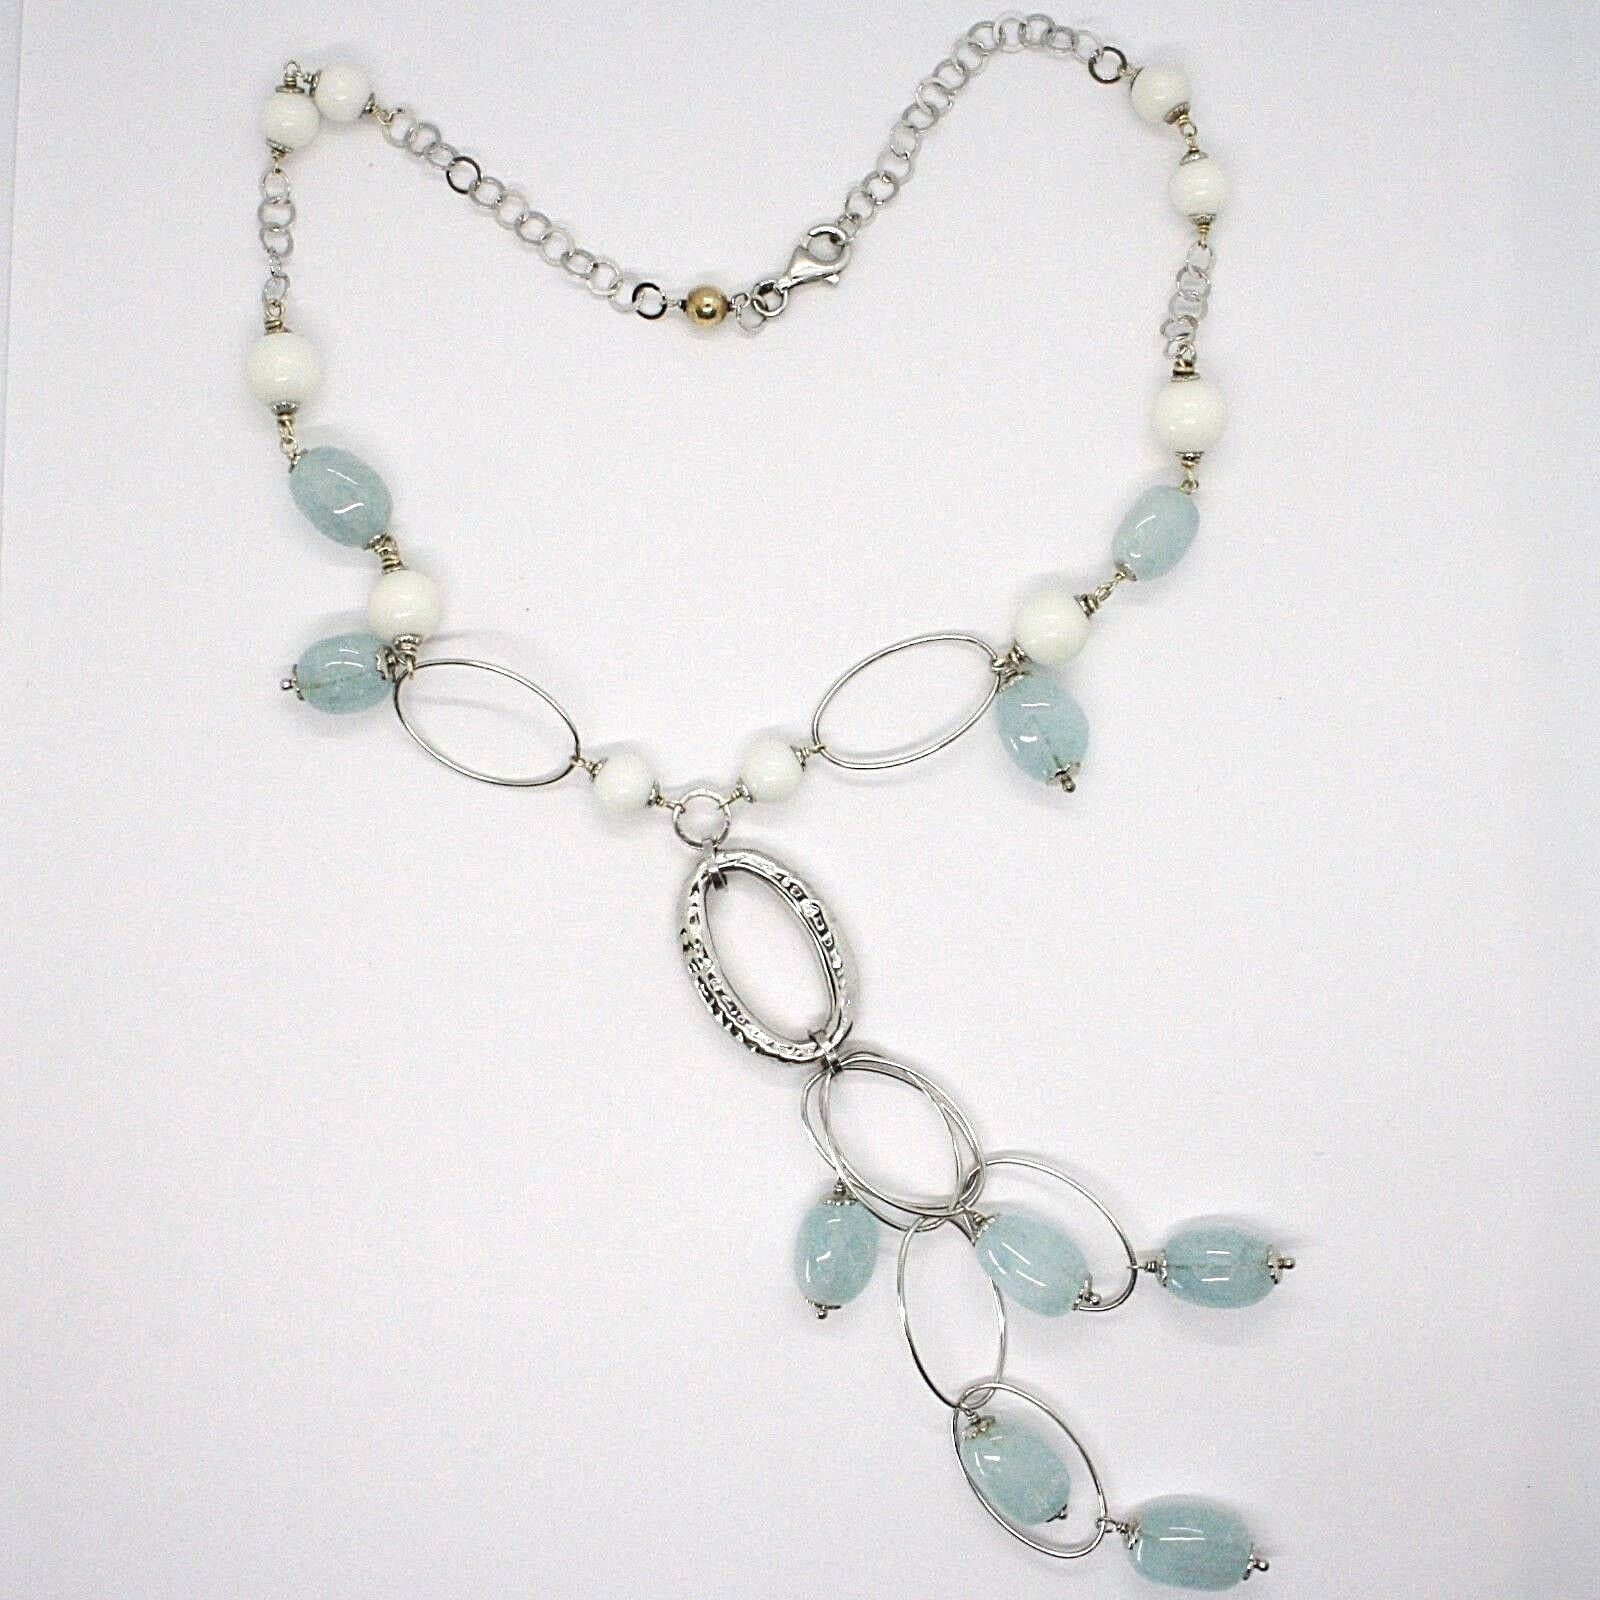 Necklace Silver 925, Spheres Agate White, Aquamarine Drop, Pendant, Ovals